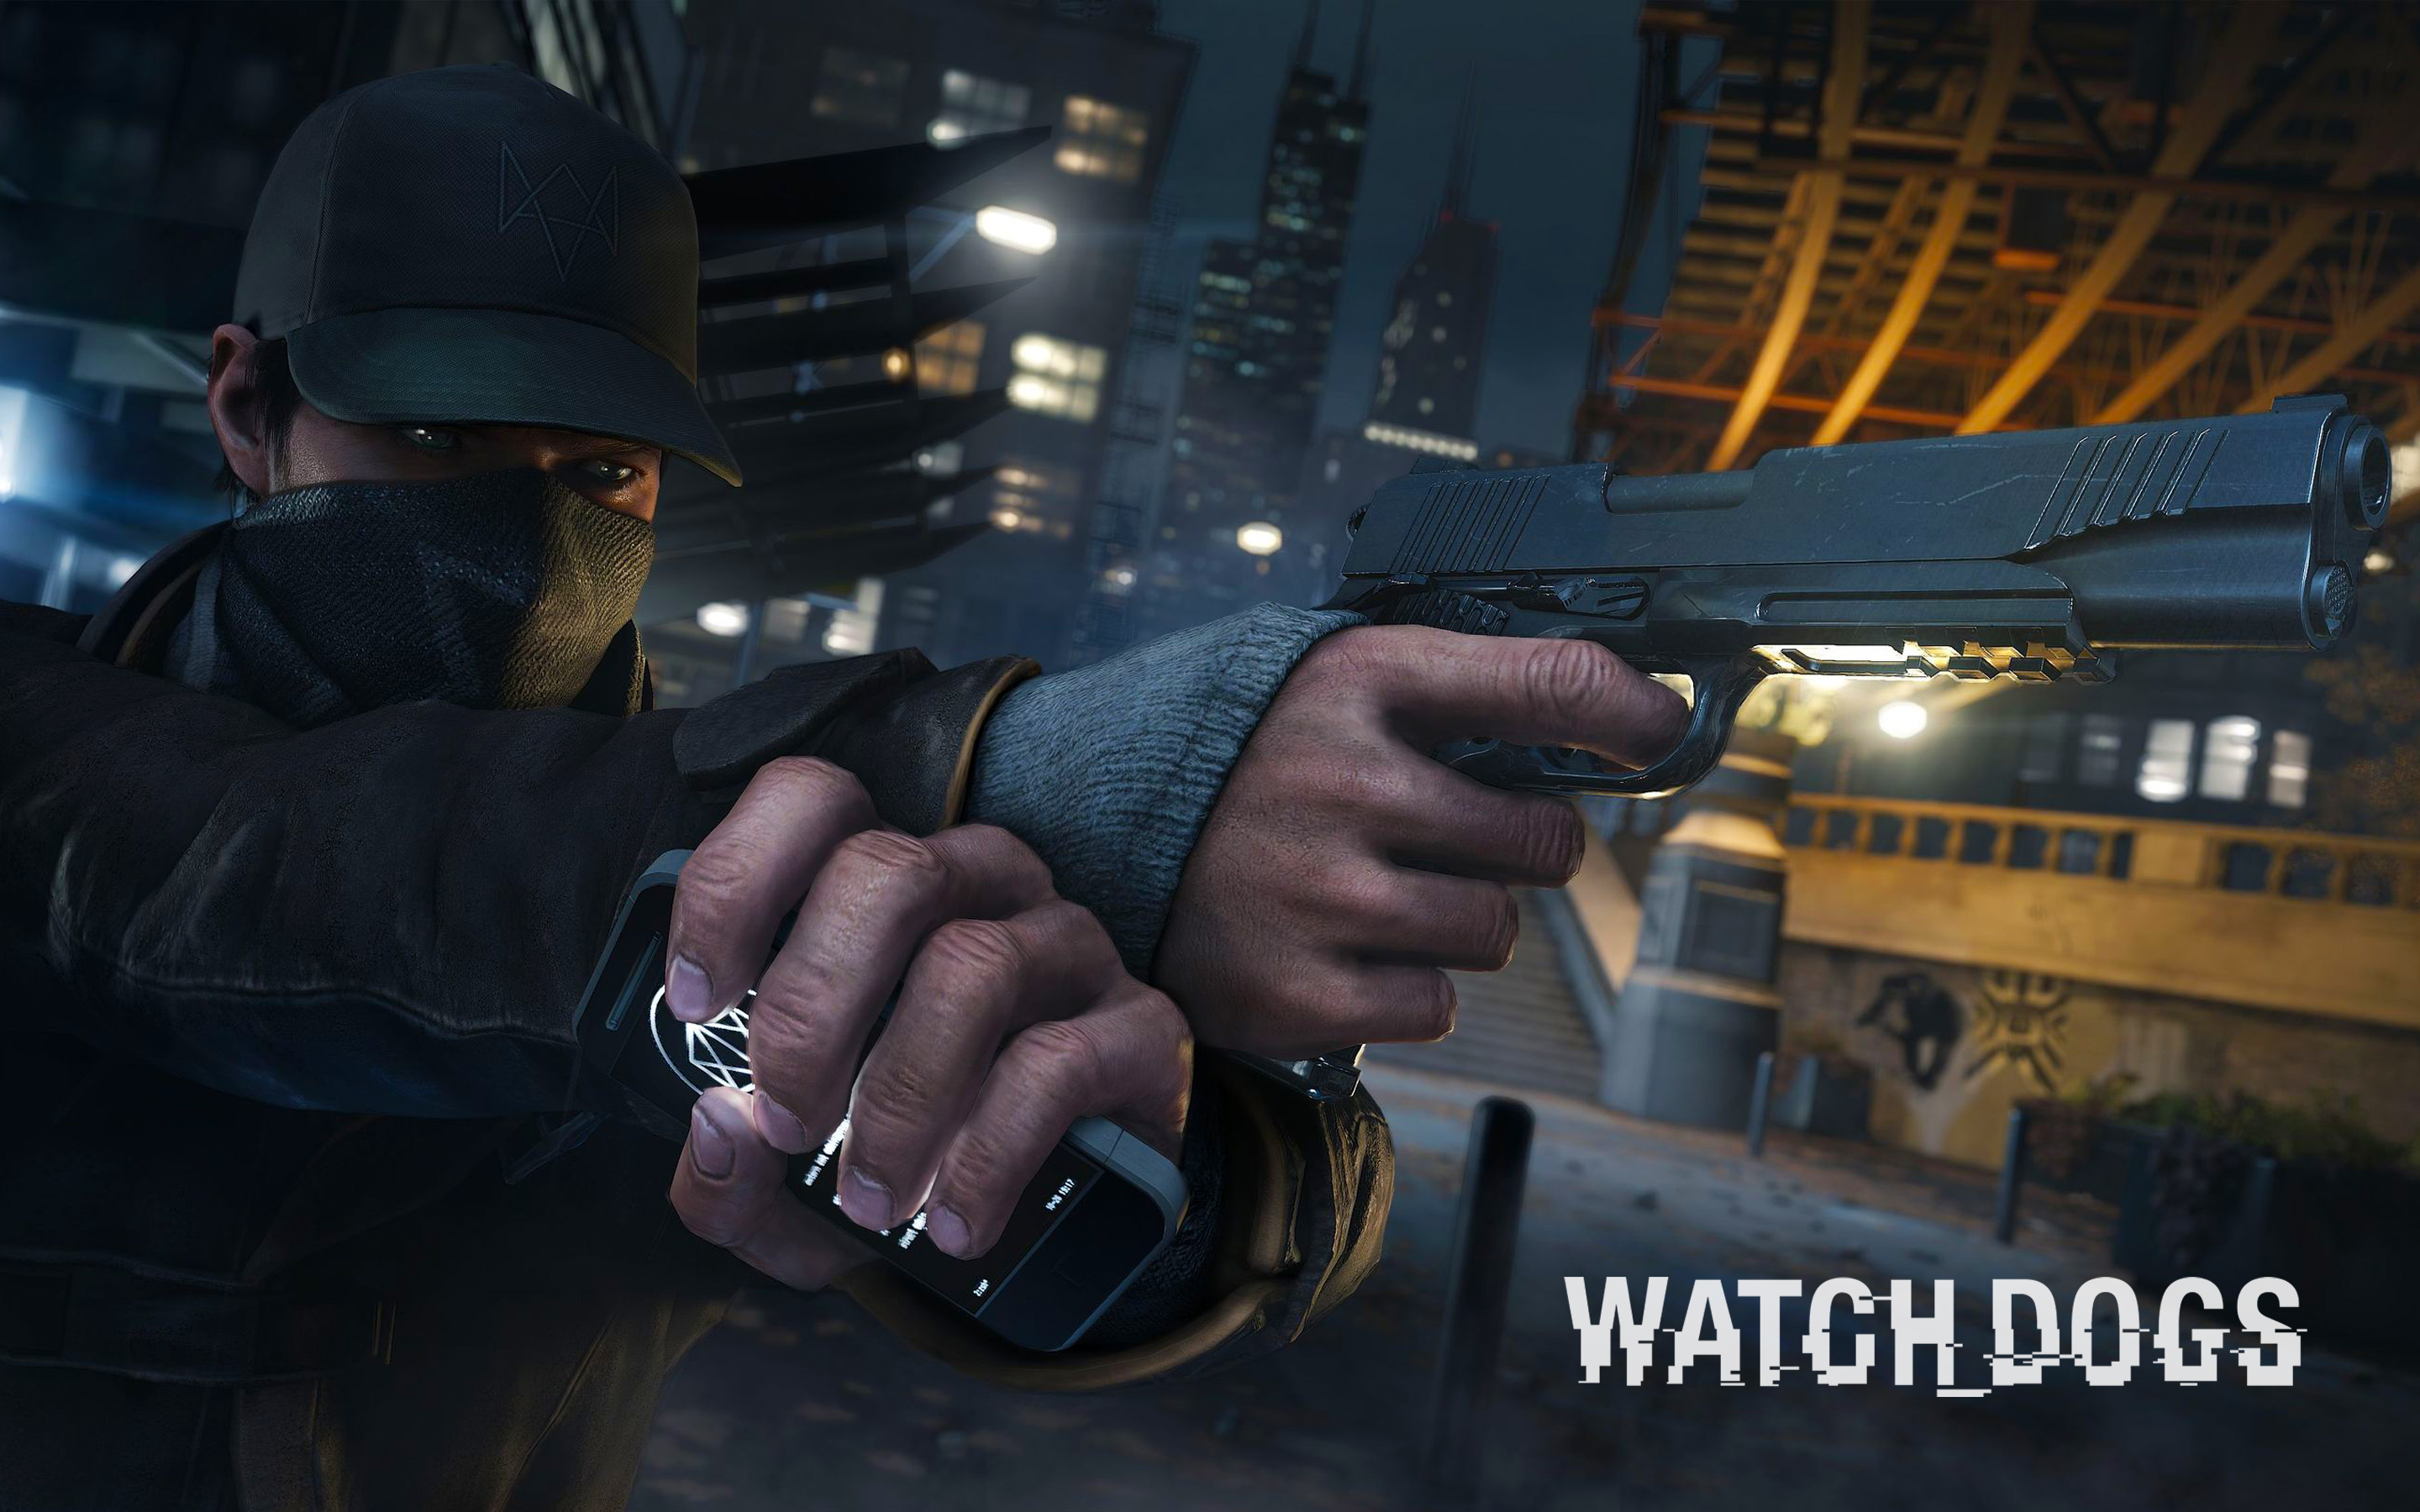 watch_dogs_2014_game-wide